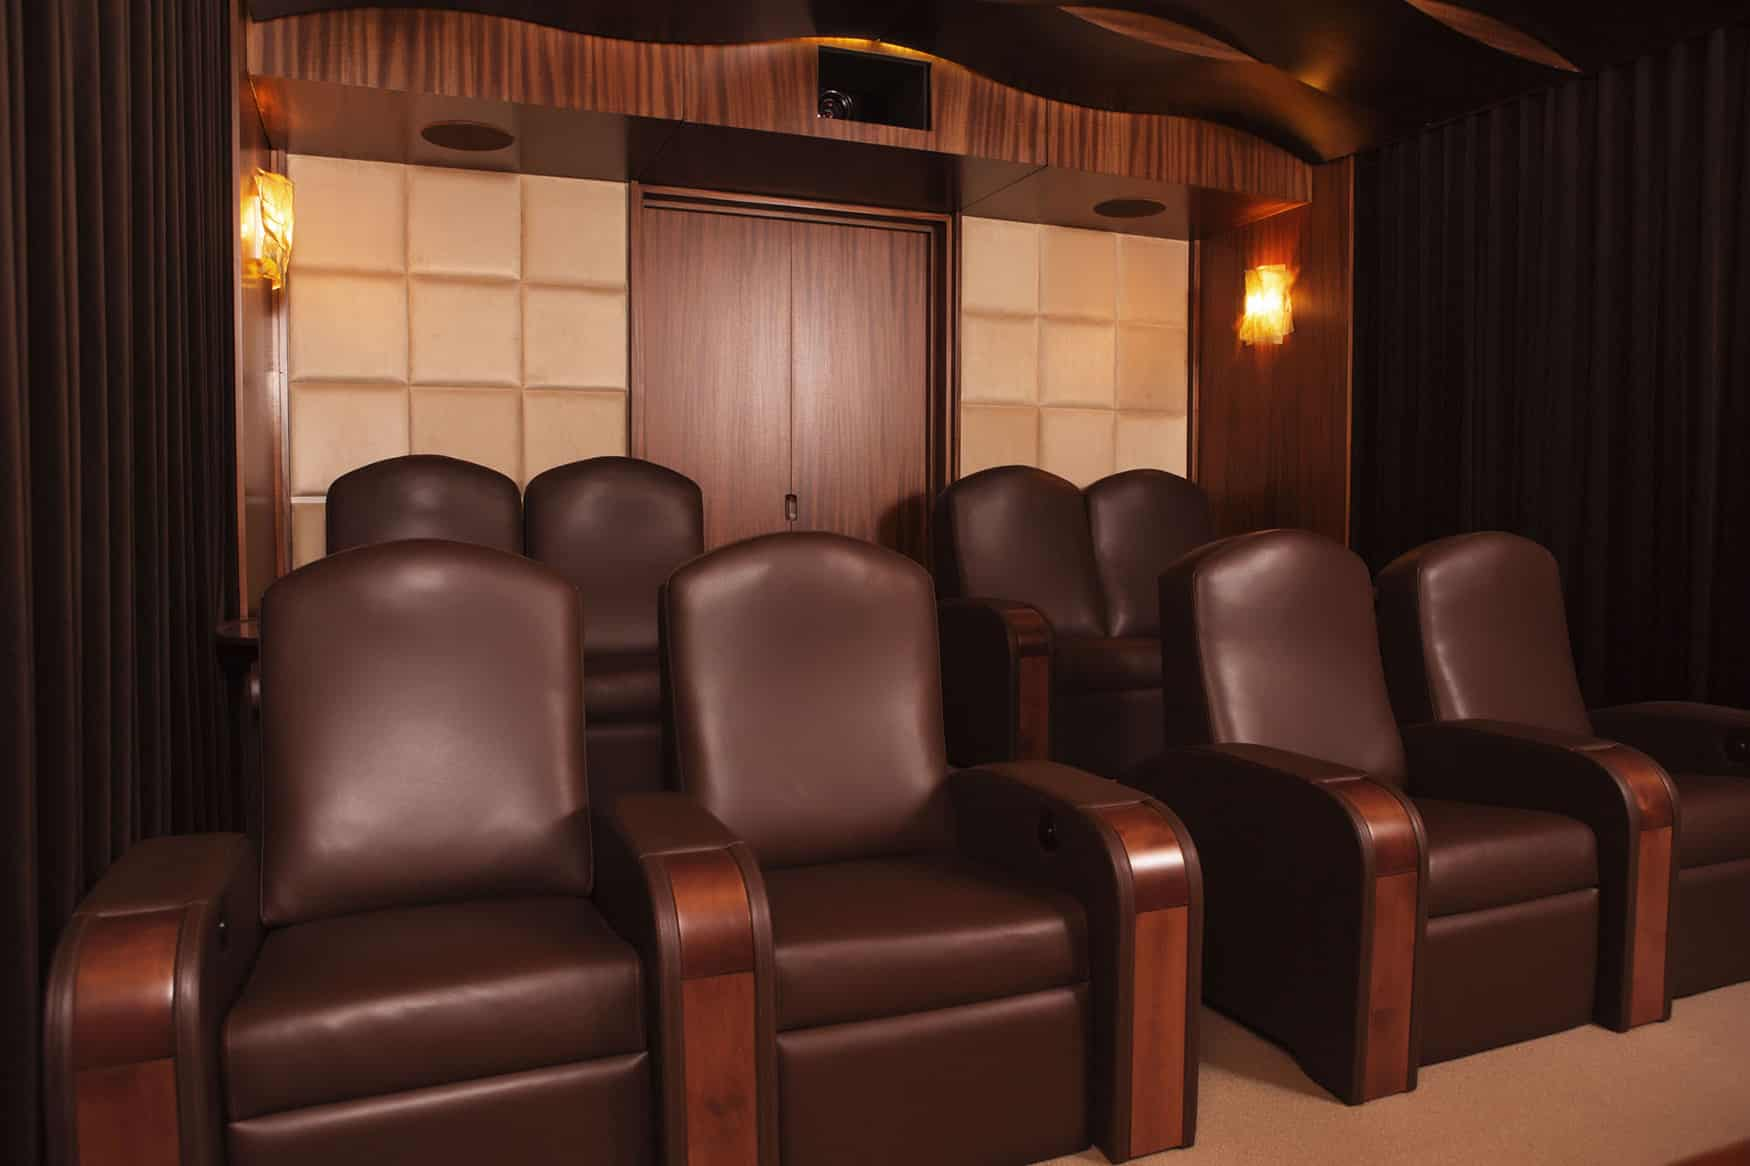 Home theatre seating custom design brown leather